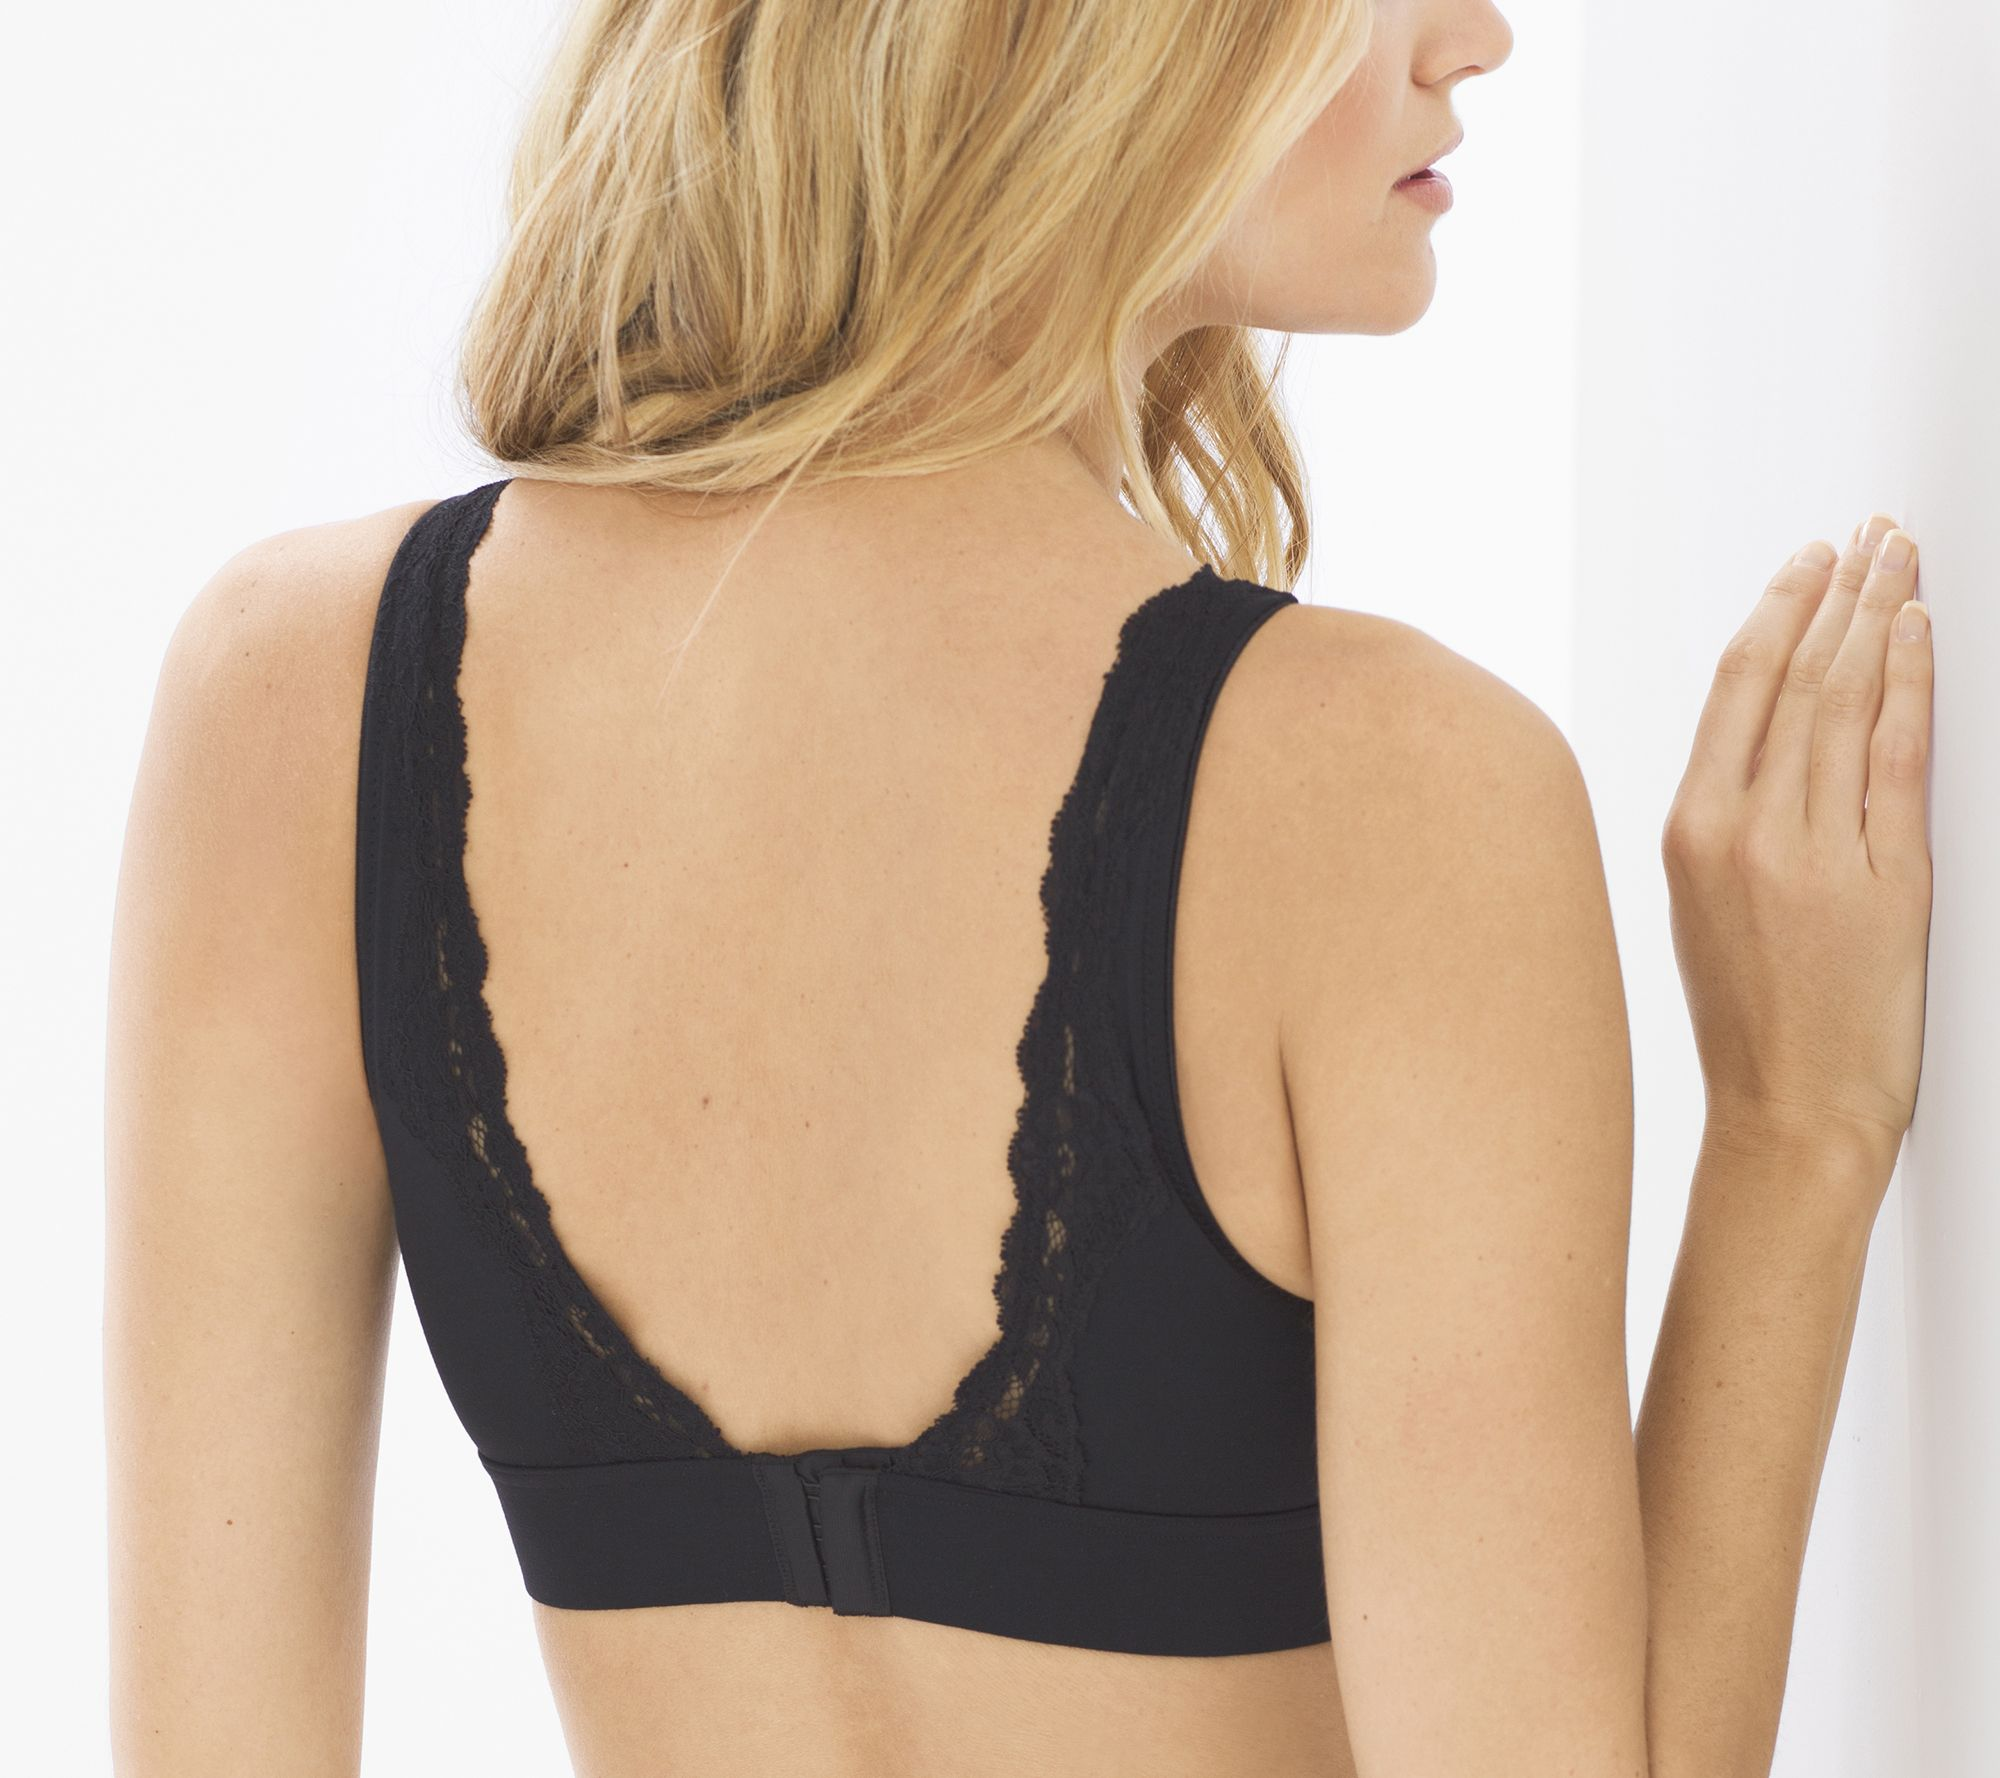 a78afaa69fc3f Soma Embraceable Wireless Lace Trim Bra - Page 1 — QVC.com